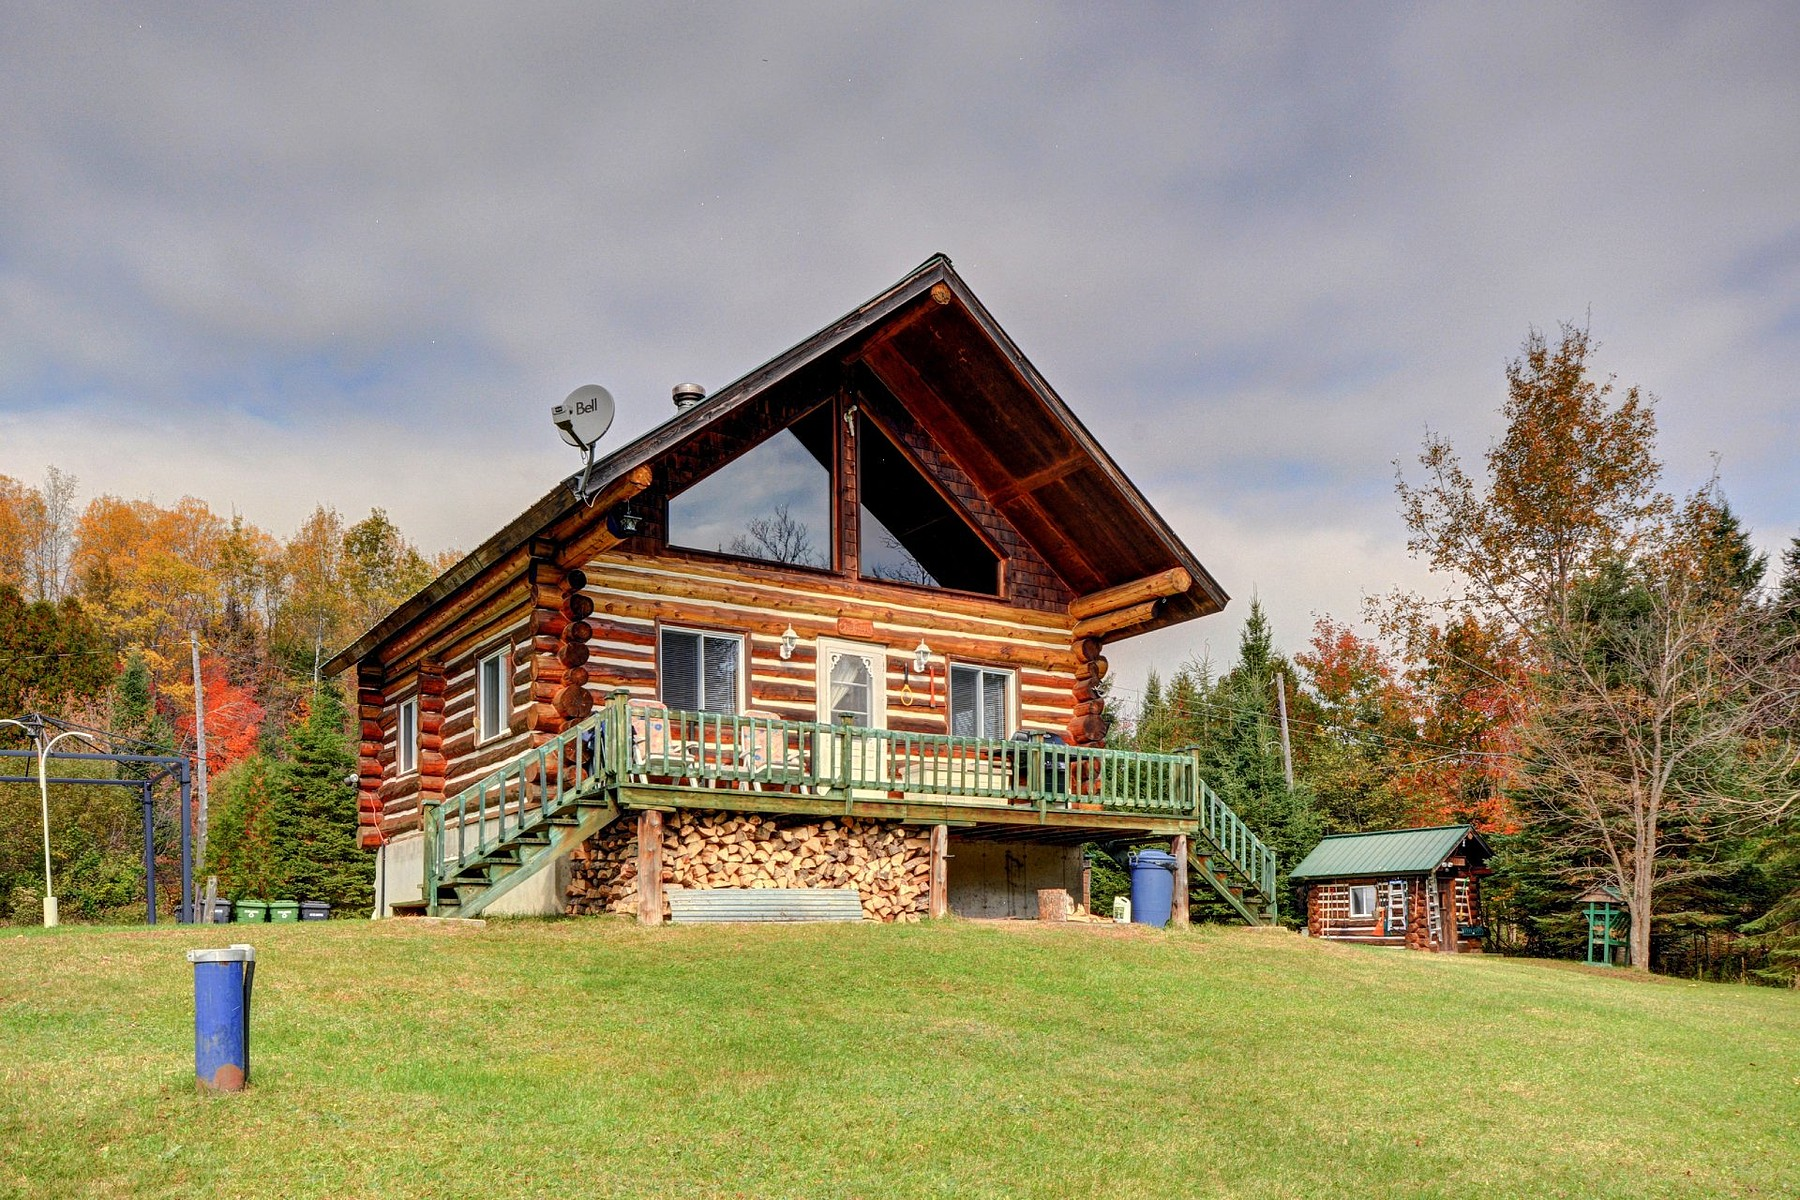 Property For Sale at Amherst, Laurentides